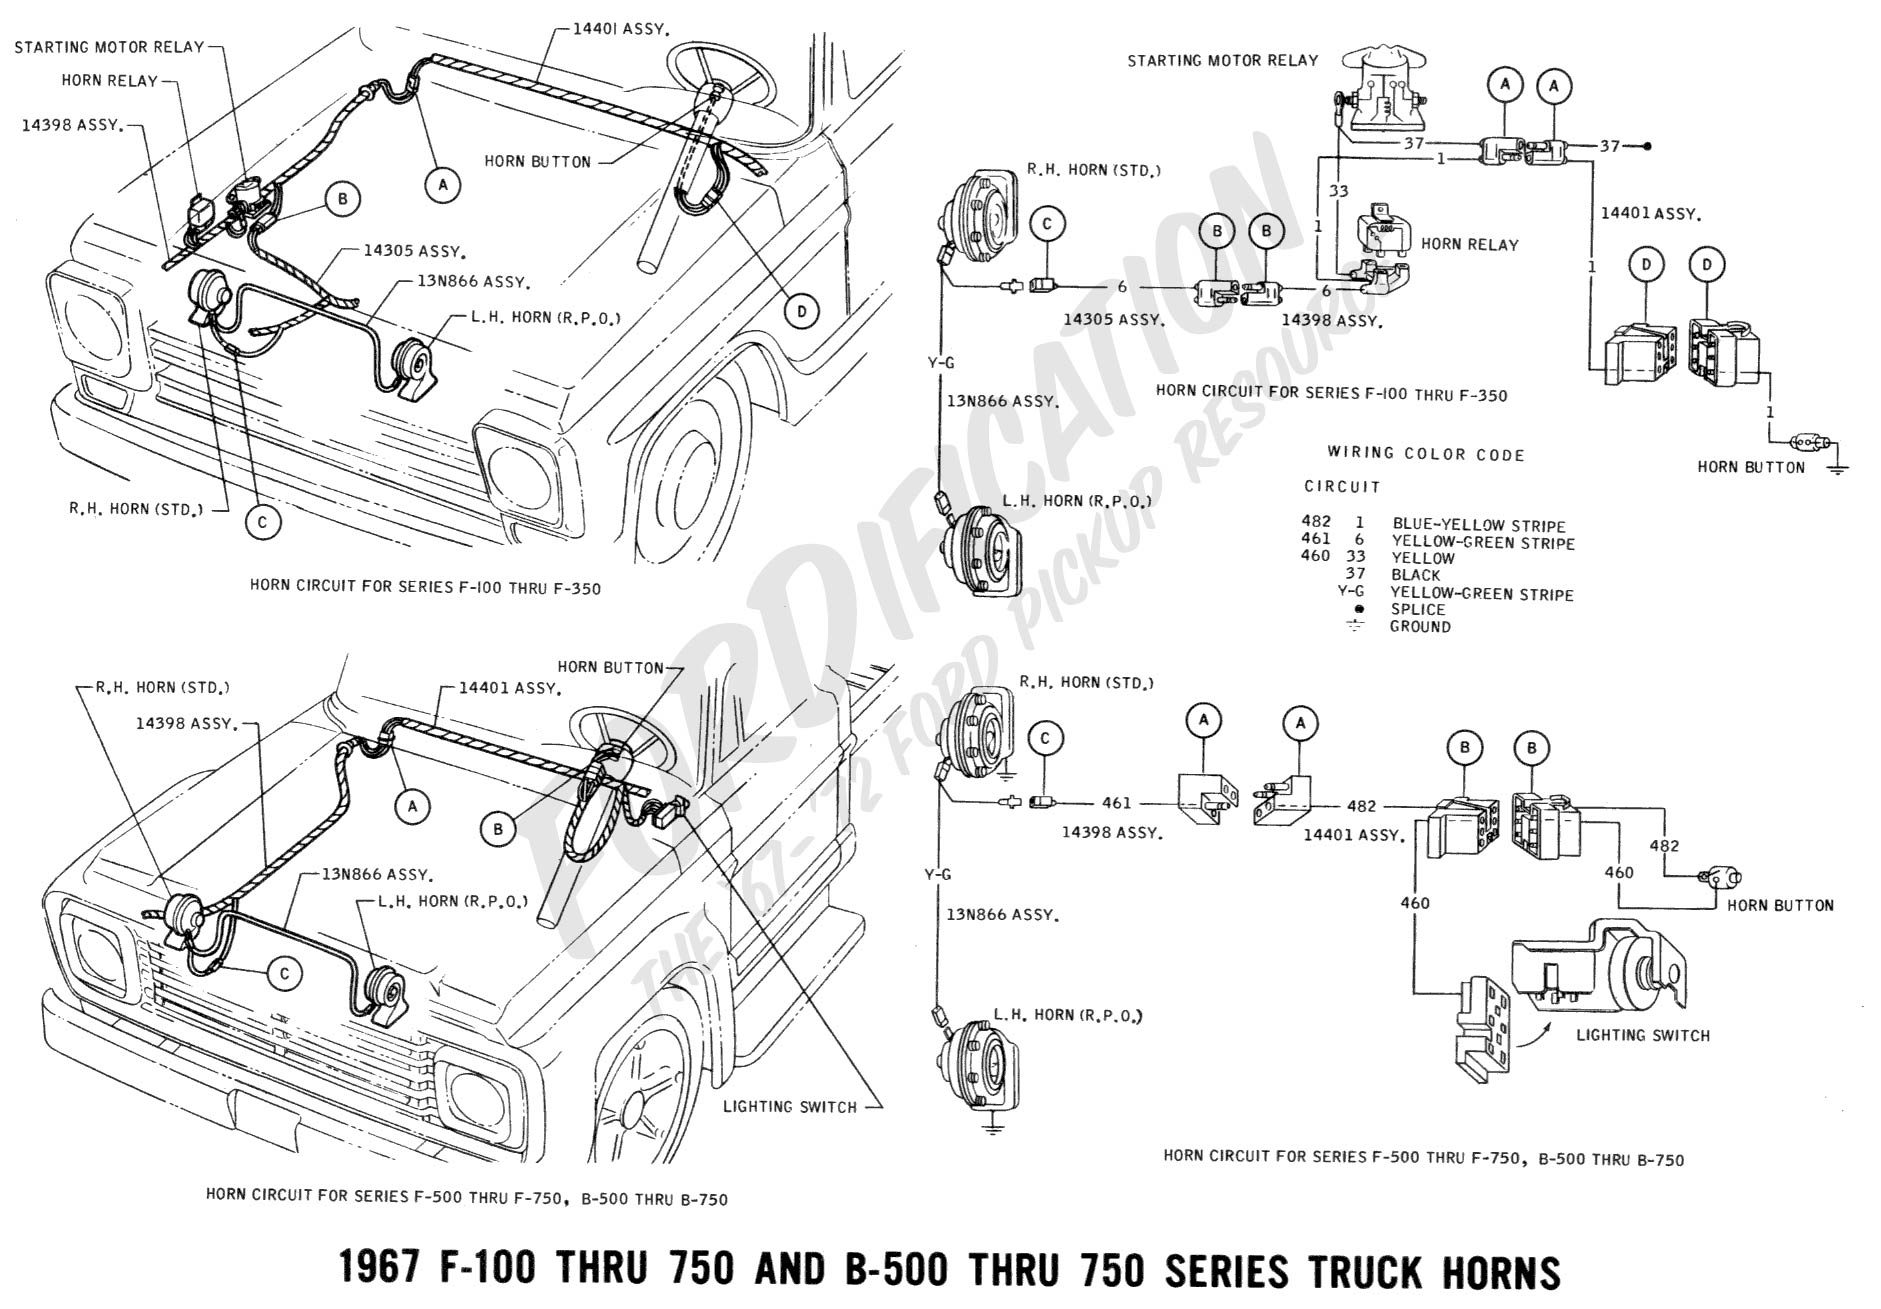 1953 ford f100 wiring diagram hw 2266  wiring diagram 1957 thunderbird get free image about  wiring diagram 1957 thunderbird